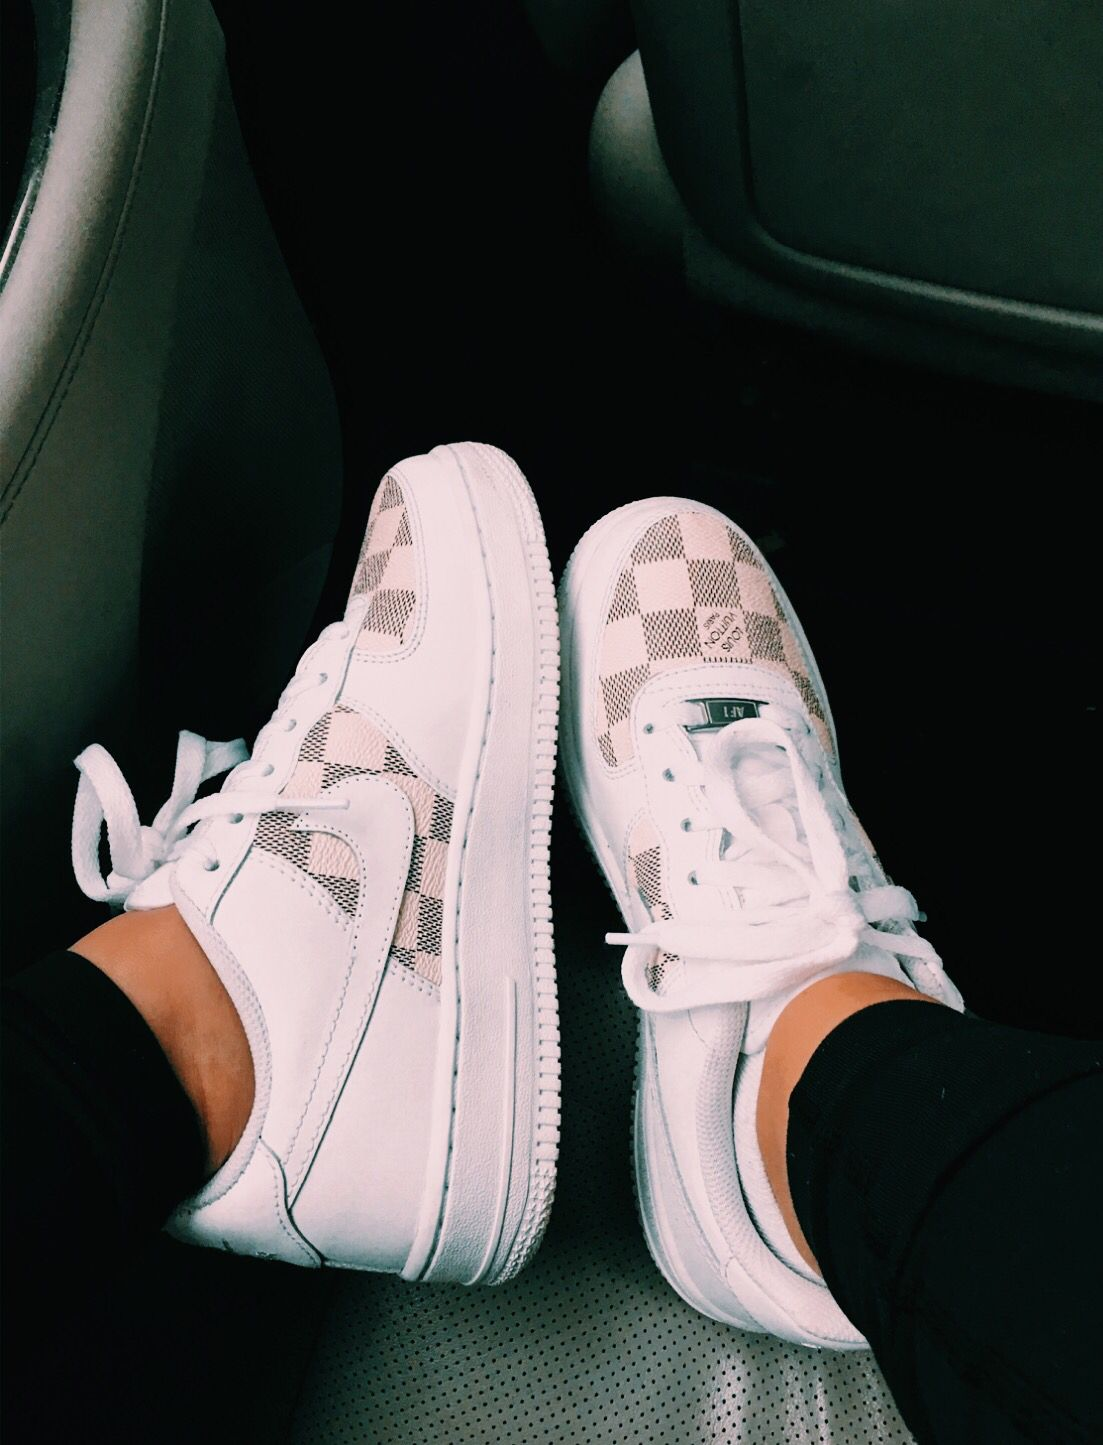 buy online d92b9 66aa3 Pin by Lephina Zeigler on SHOES TRIXX in 2019   Zapatos adidas, Zapatos nike,  Zapatos